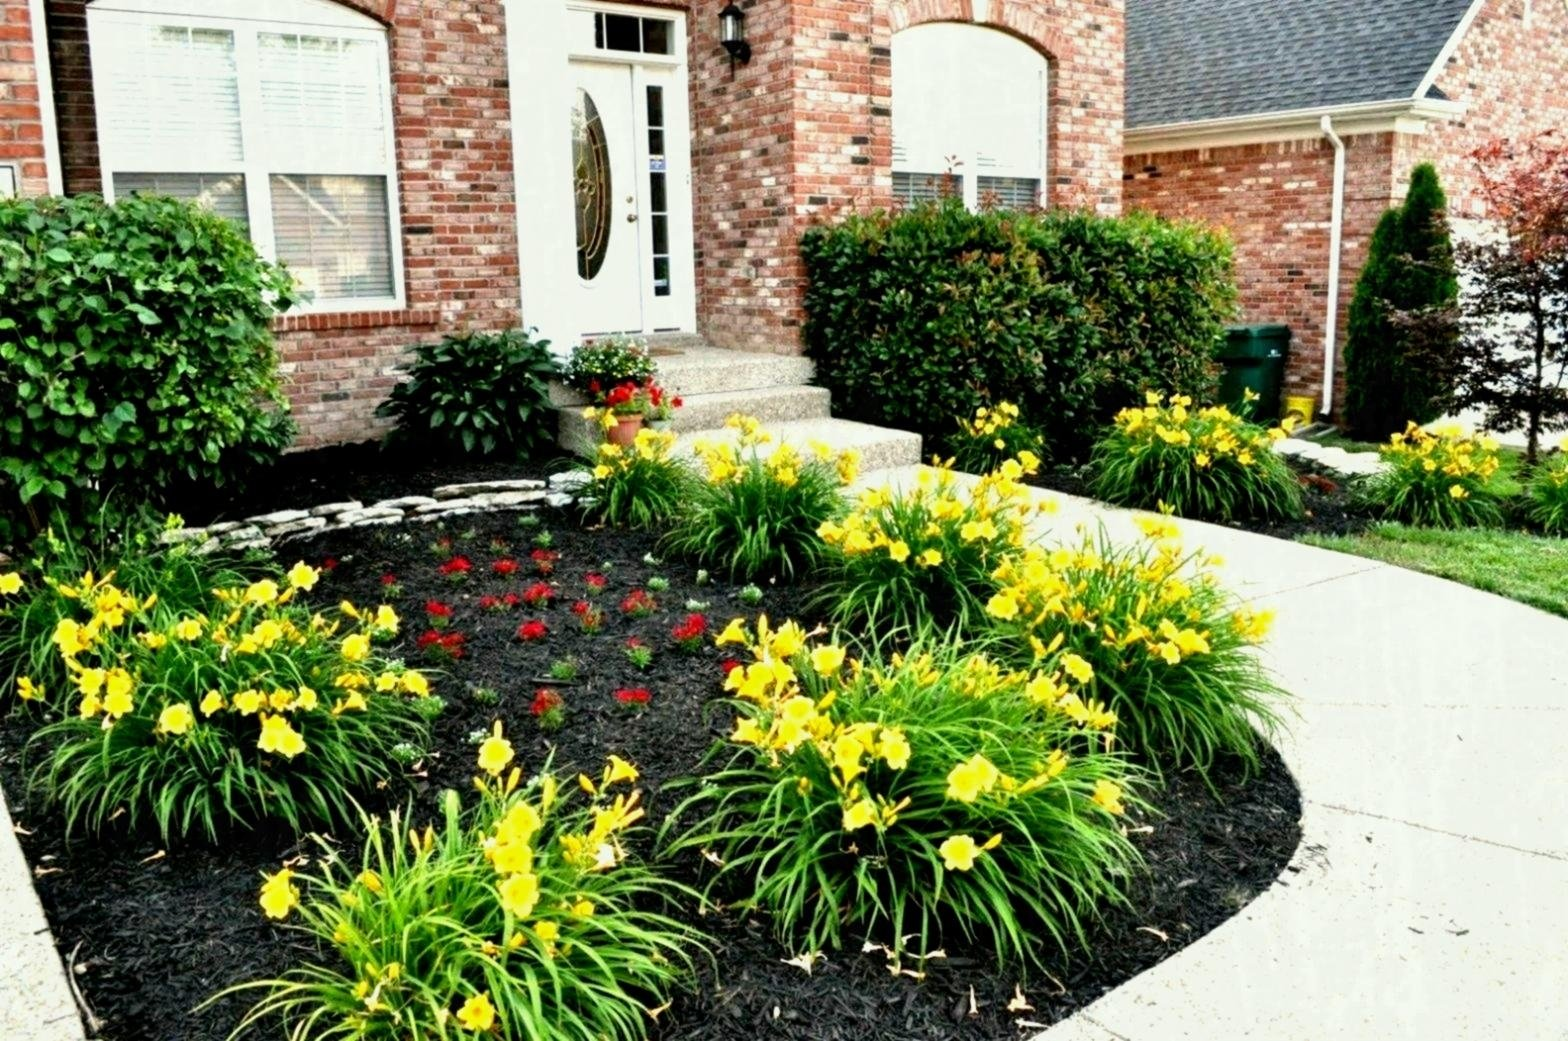 10 Lovable Flower Bed Ideas For Front Of House flower bed ideas front of house simple home garden ideas for your home 2021